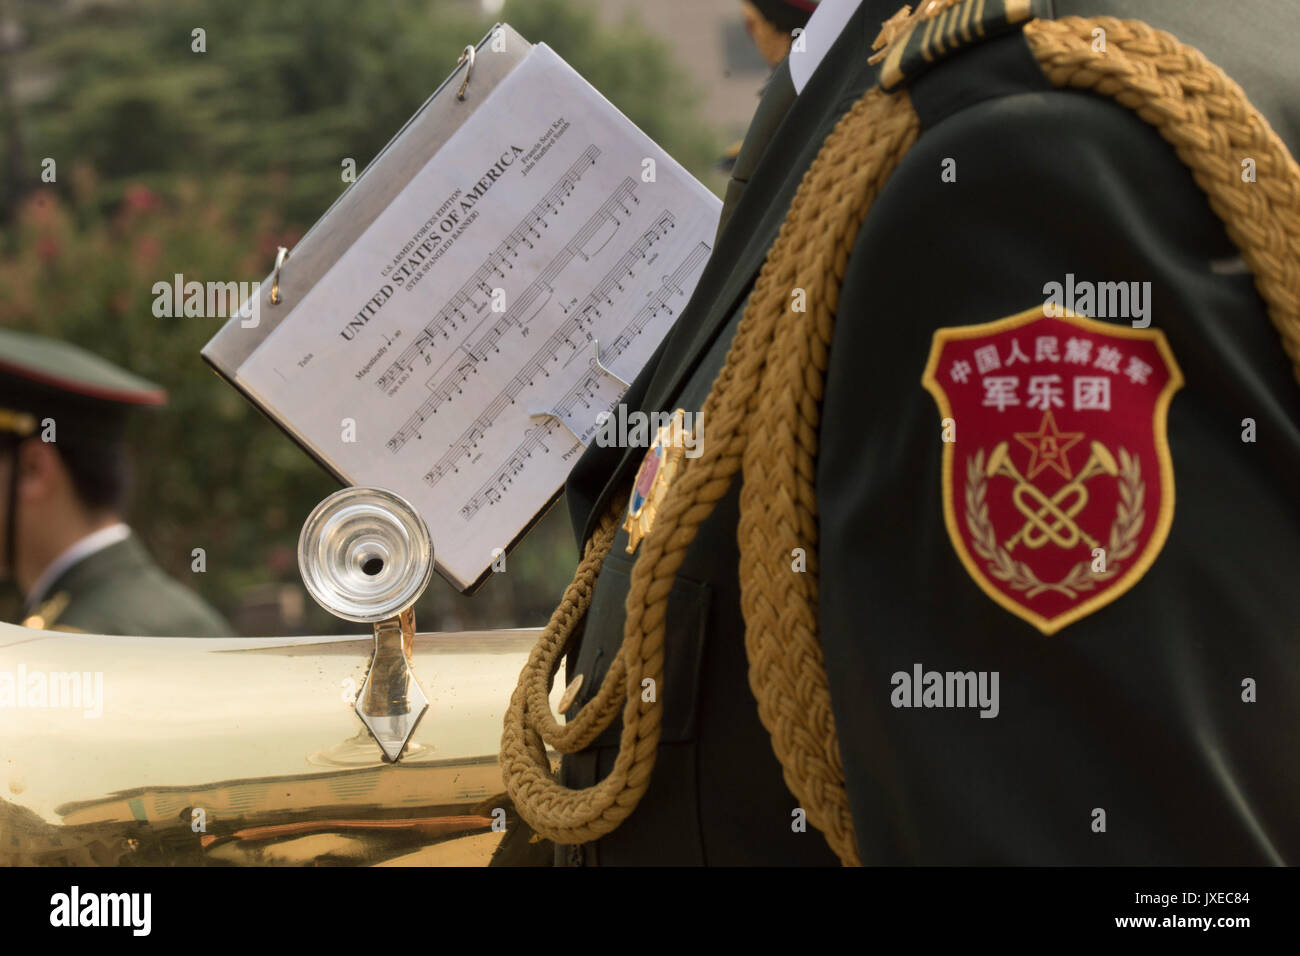 Beijing, China. 15th Aug, 2017. Chinese People's Liberation Army honor guard band with a copy of the music for the Stock Photo